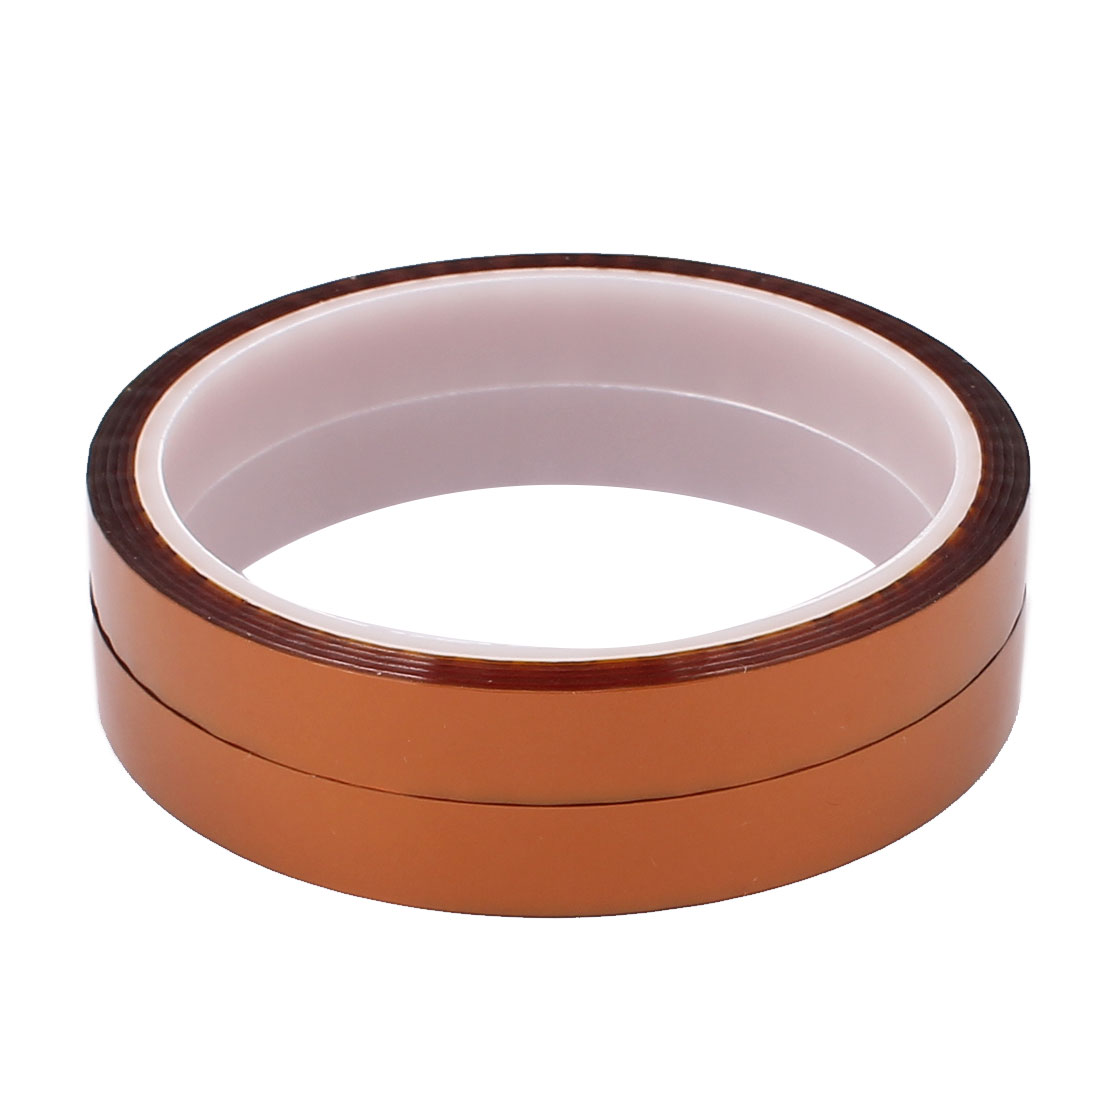 2pcs 12mm Width 30M Length High Temperature Heat Resistant Polyimide Tape